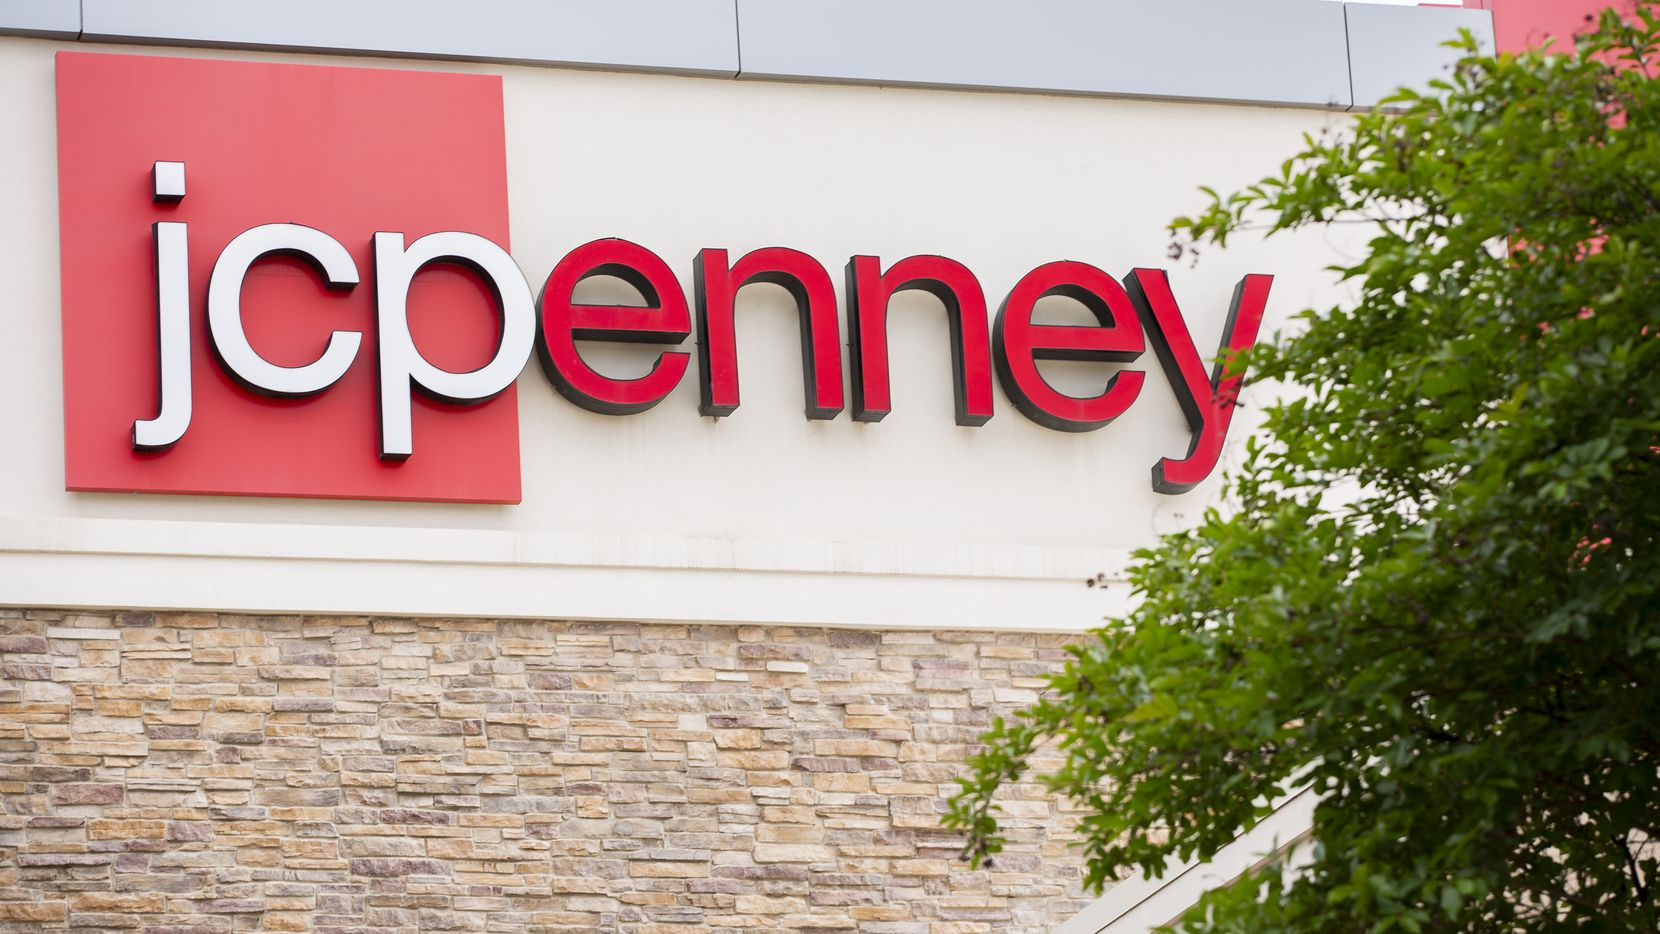 The exterior of the J.C. Penney that closed last year in the Timber Creek Crossing shopping center in Dallas.